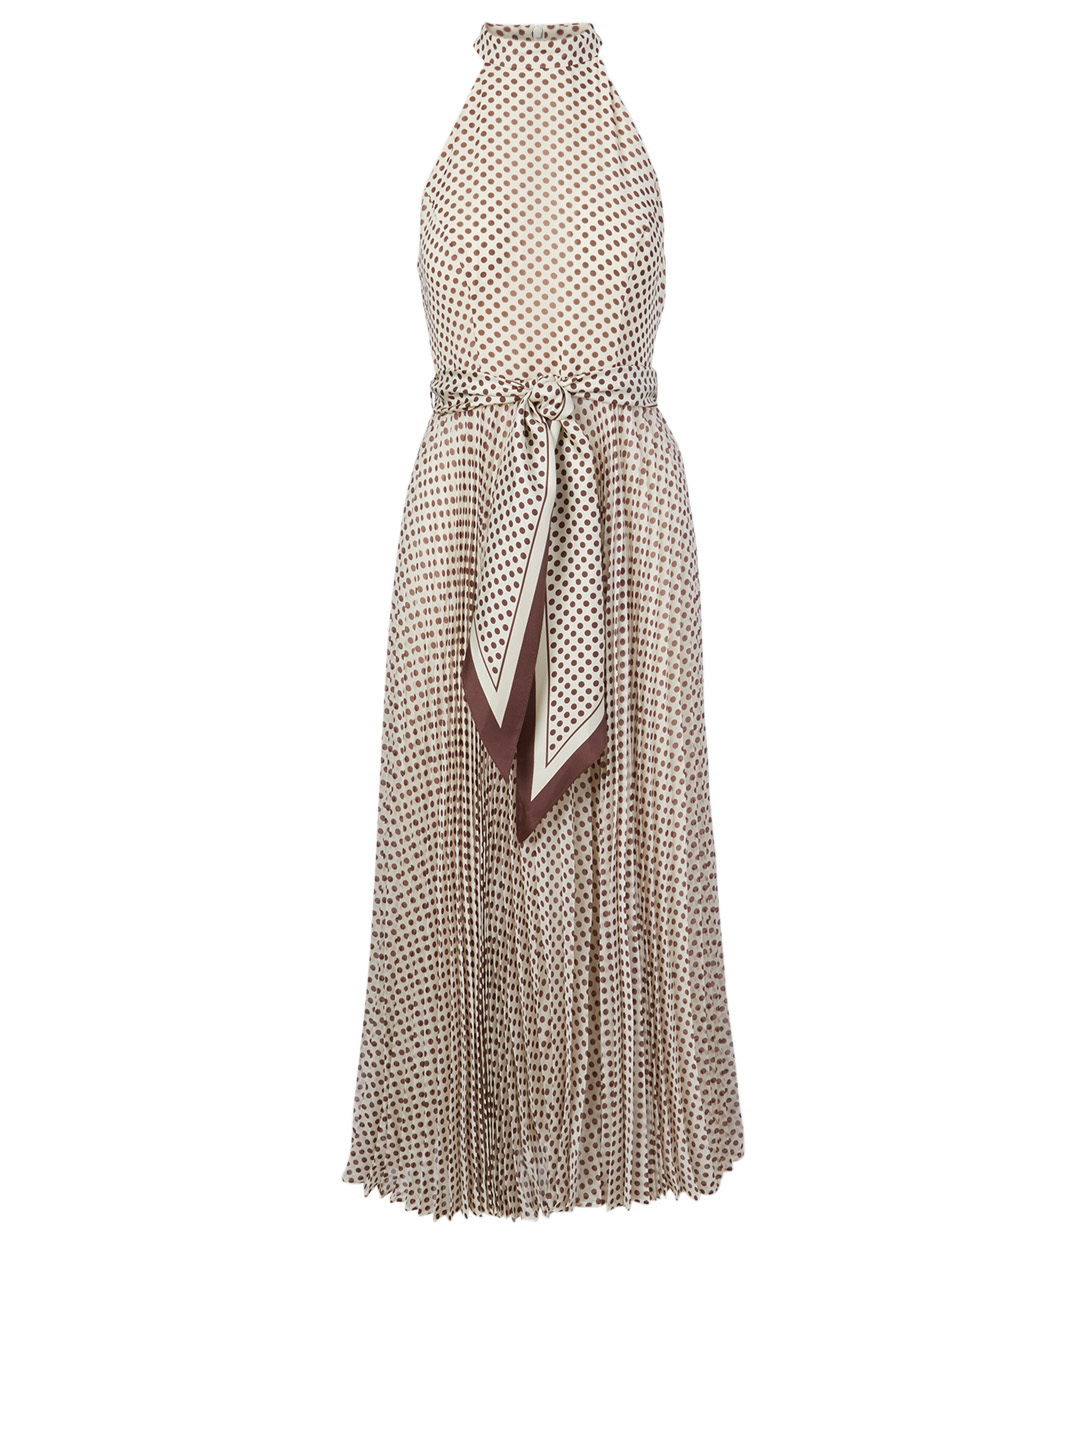 ZIMMERMANN Sunray Long Dress In Polka Dot Print Women's White